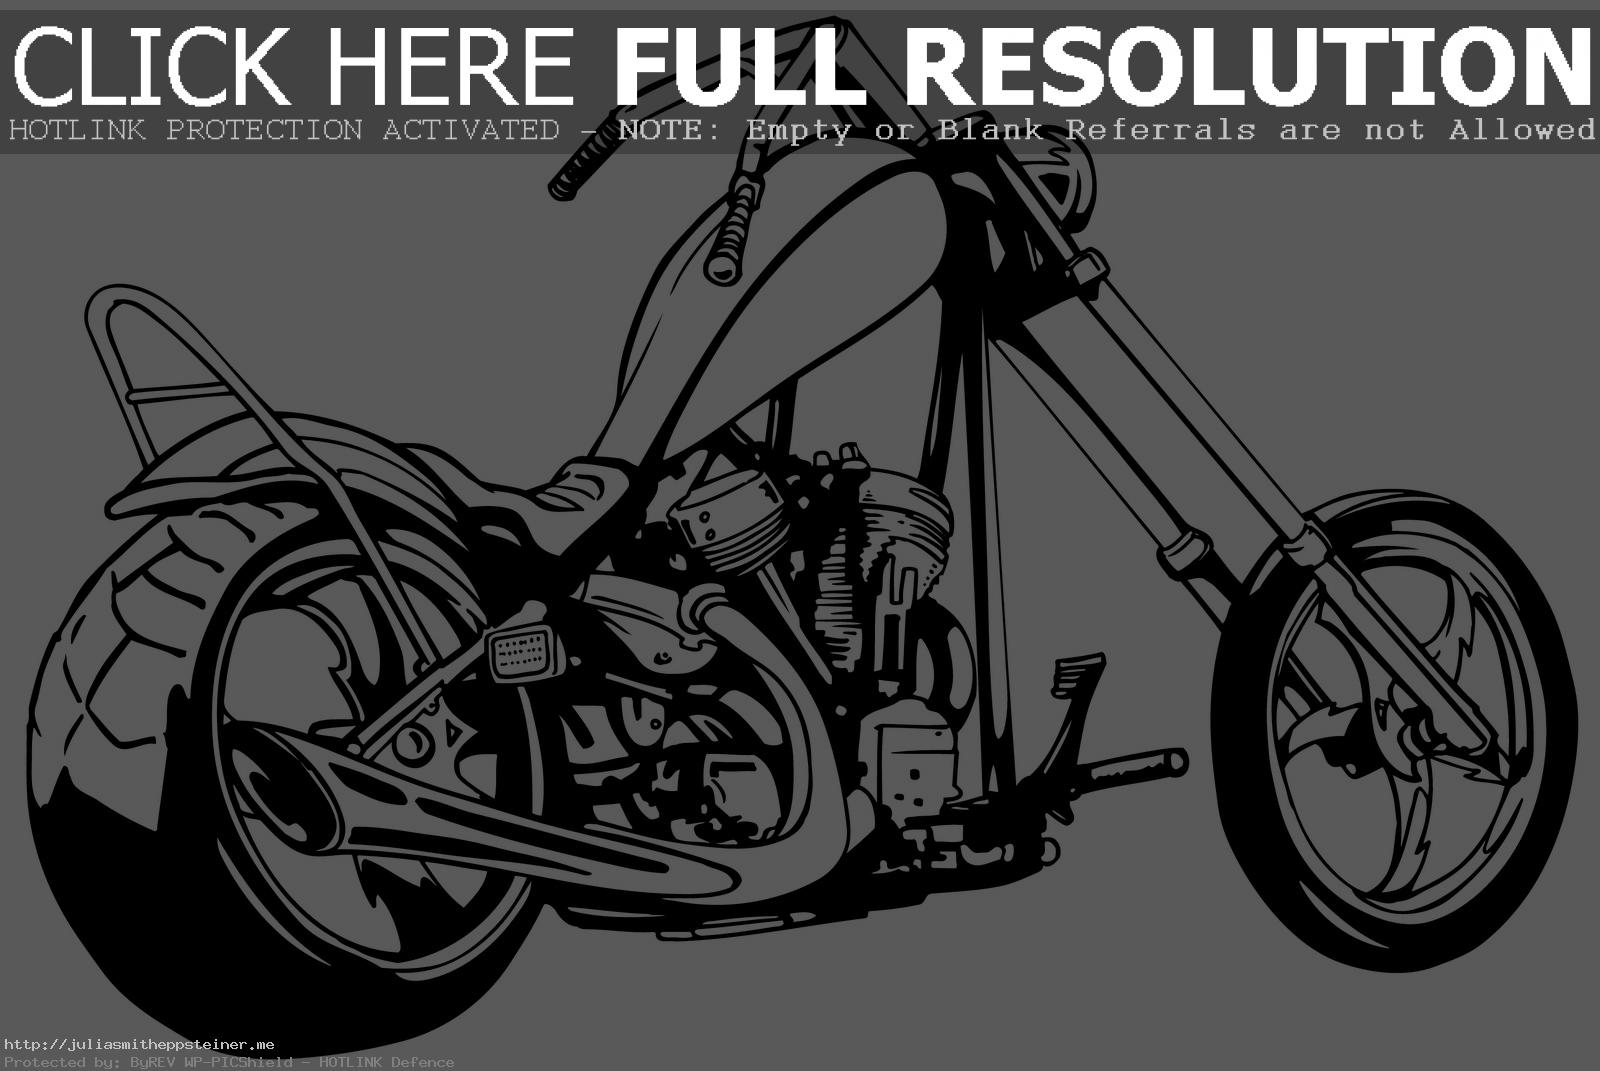 . ClipartLook.com Clipart Tank Image Tearing Chopper Motorcycle Silhouette B Free Lovely Harley  Davidson ClipartLook.com